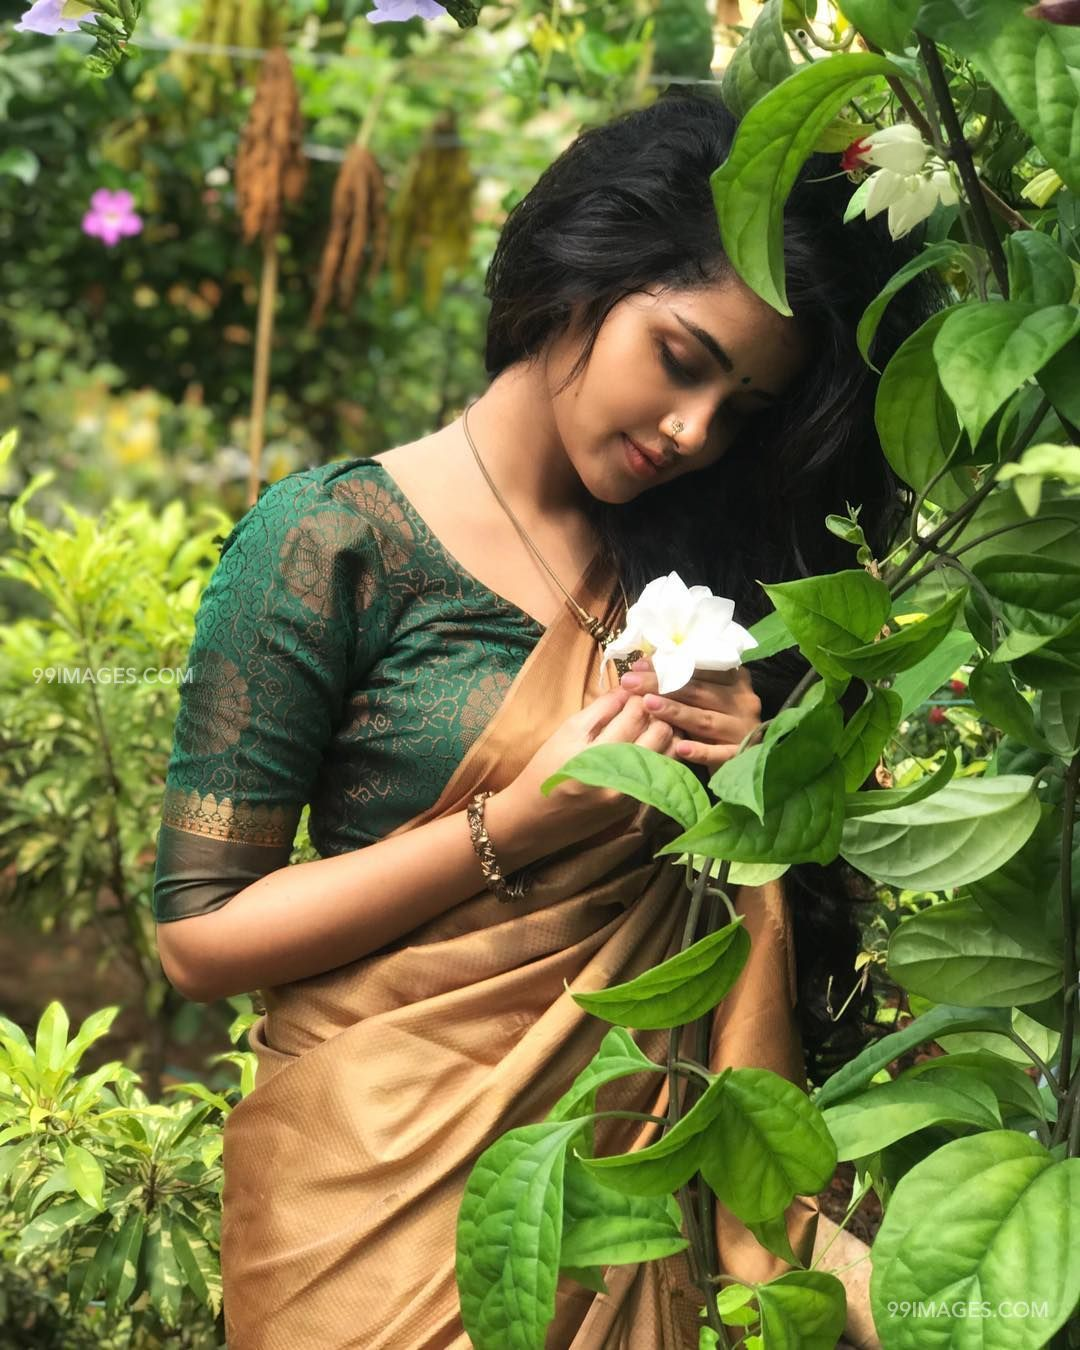 Anupama Parameswaran HD Wallpapers (Desktop Background / Android / iPhone) (1080p, 4k) (82007) - Anupama Parameswaran